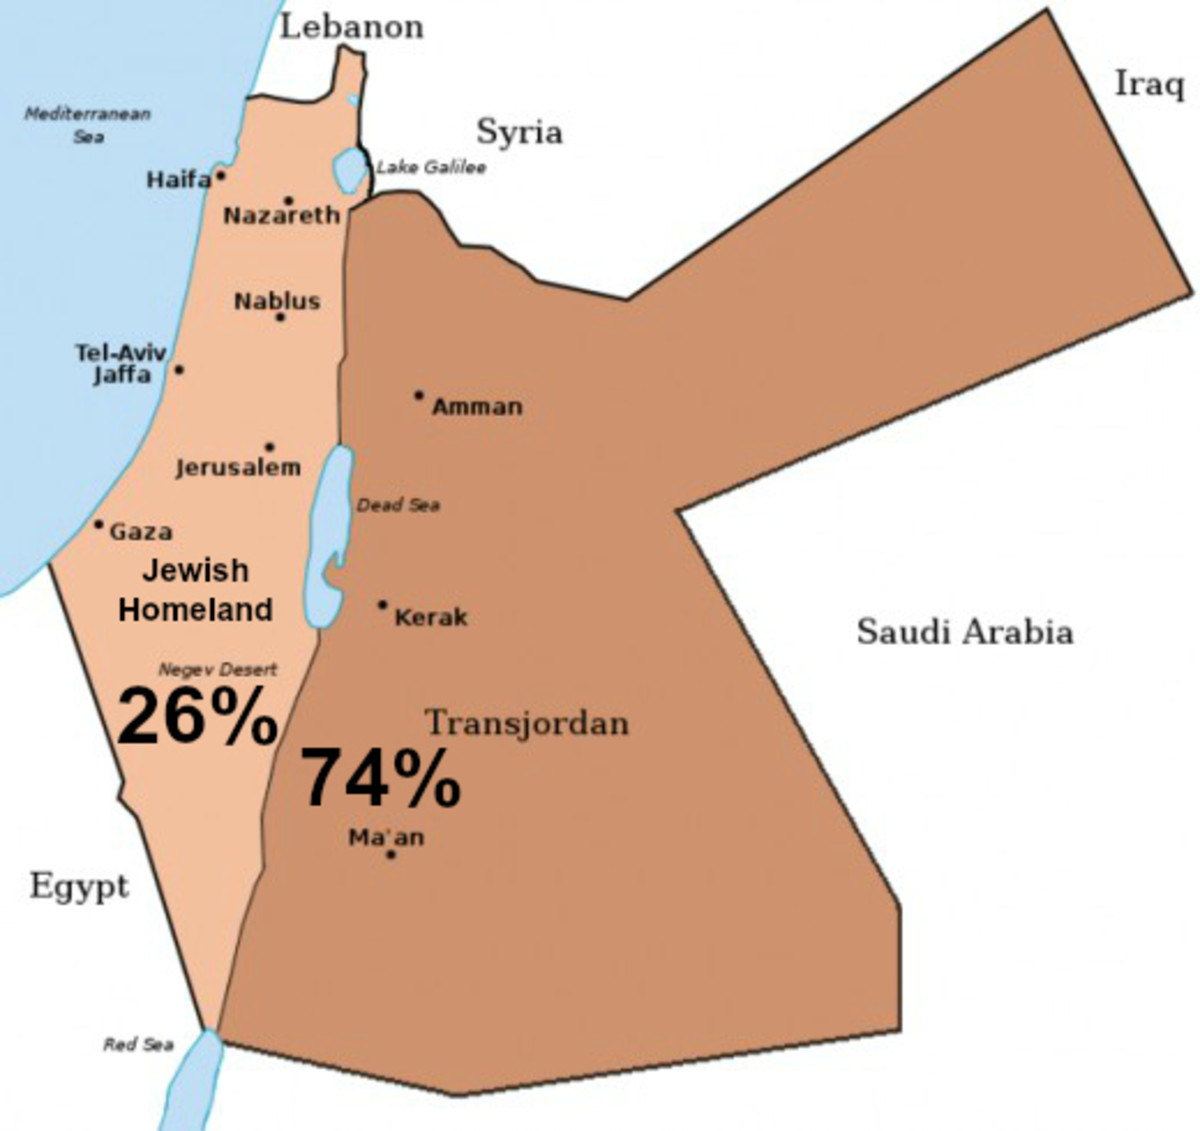 1922 Map of Land for Jewish Homeland and Transjordan under the Mandate for Palestine